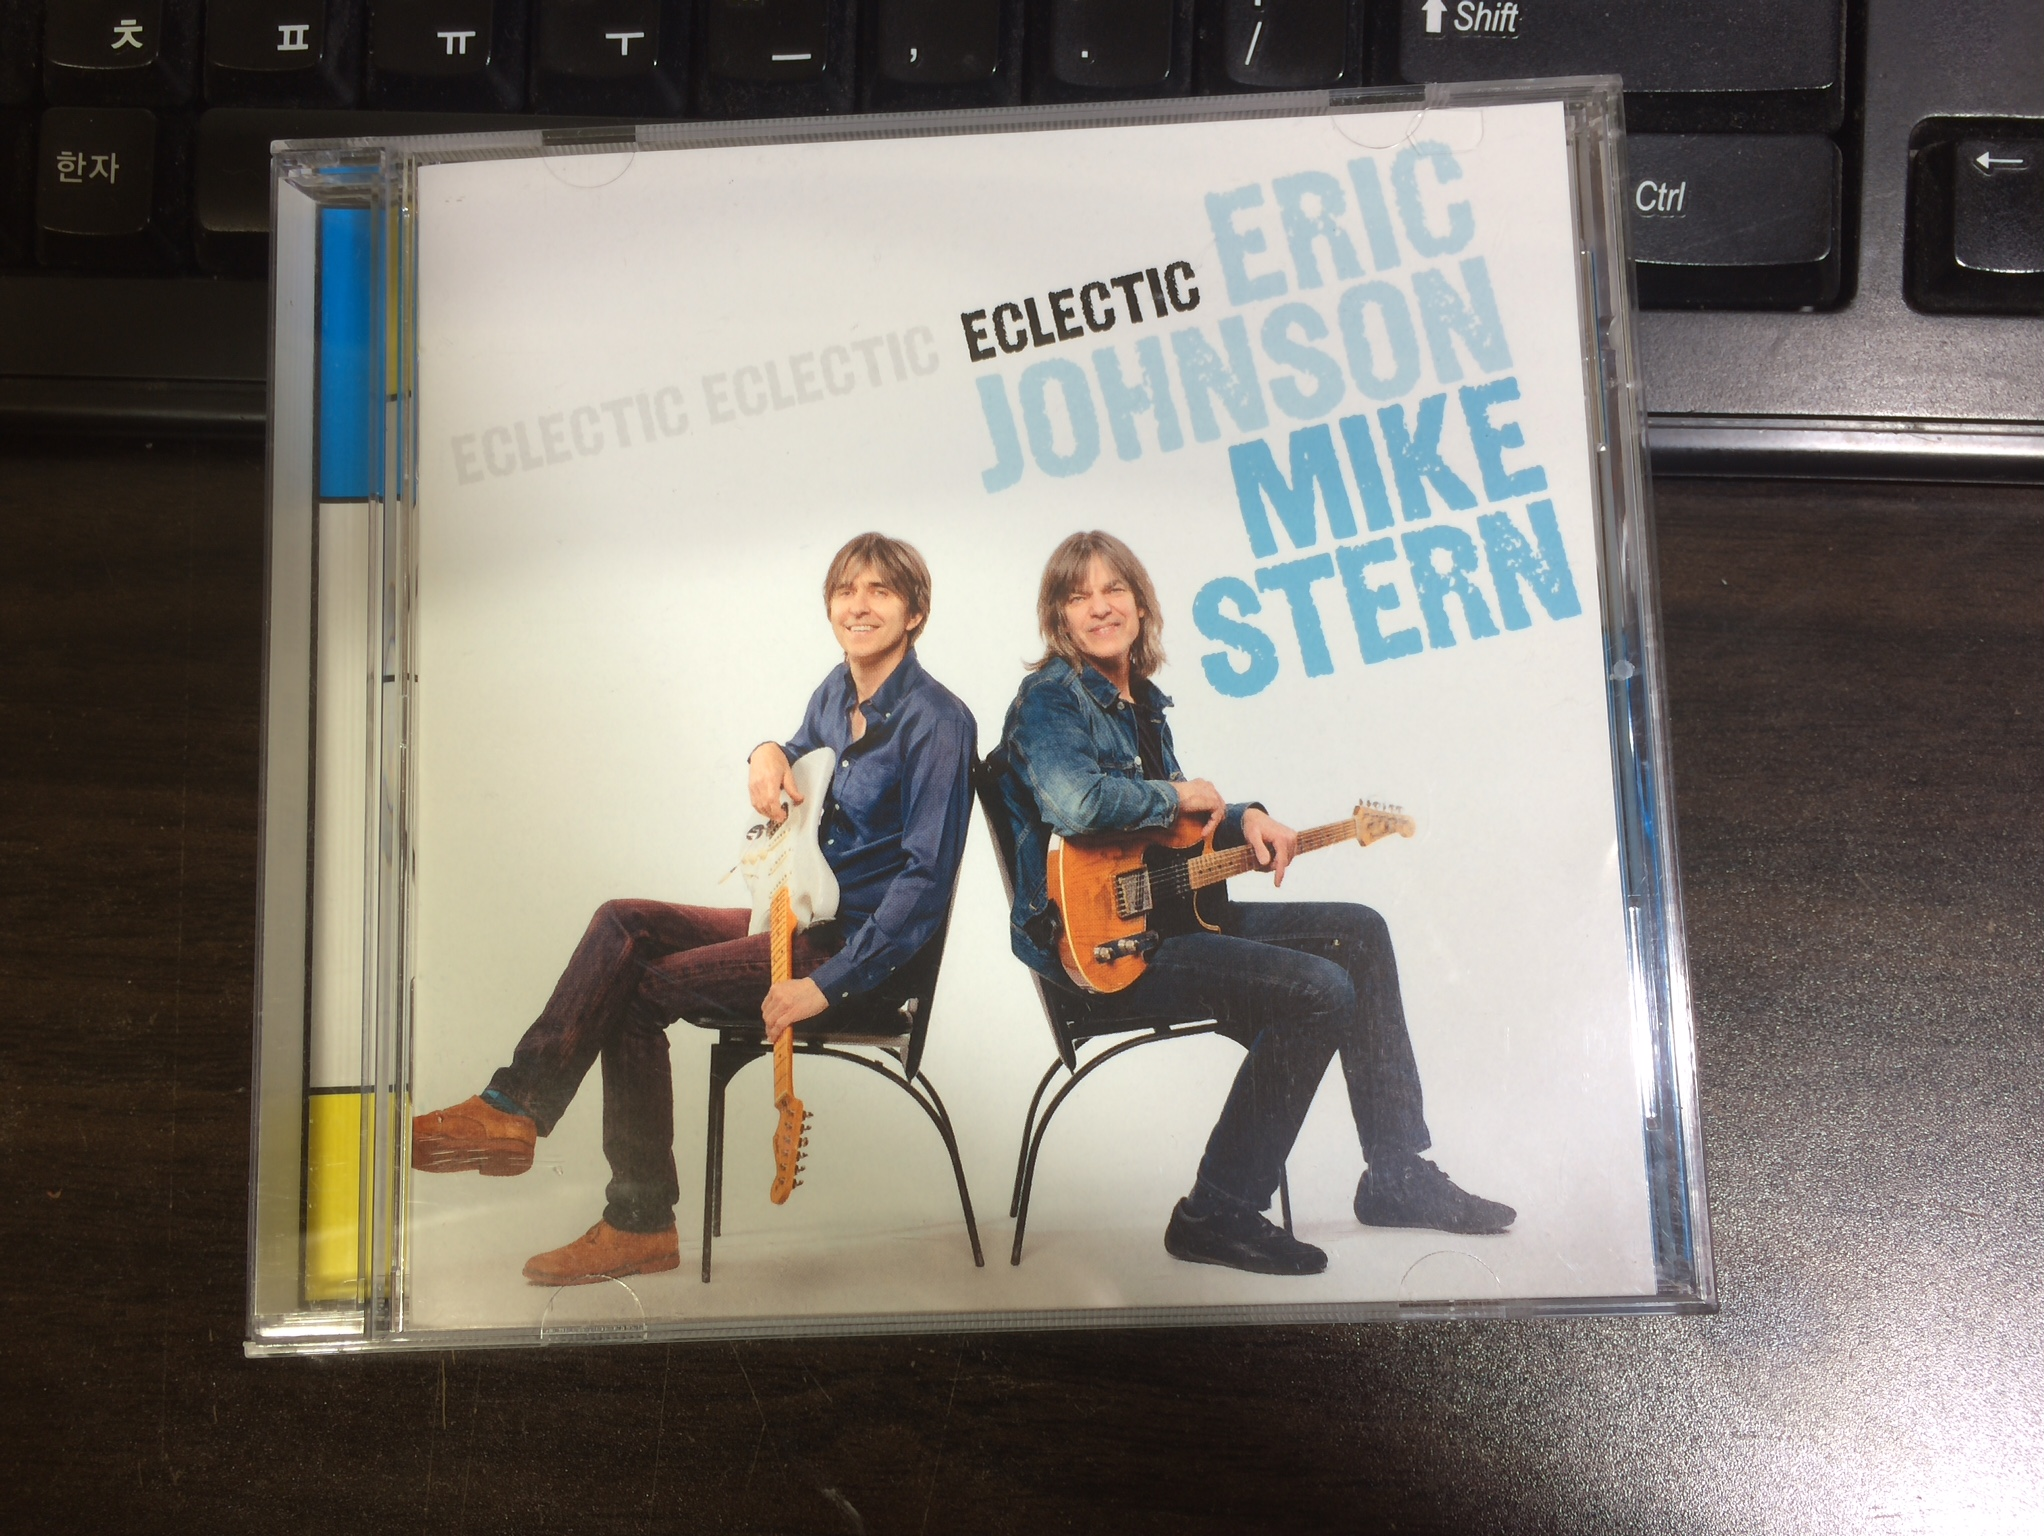 Eclectic - Eric Johnson & Mike Stern / 2014